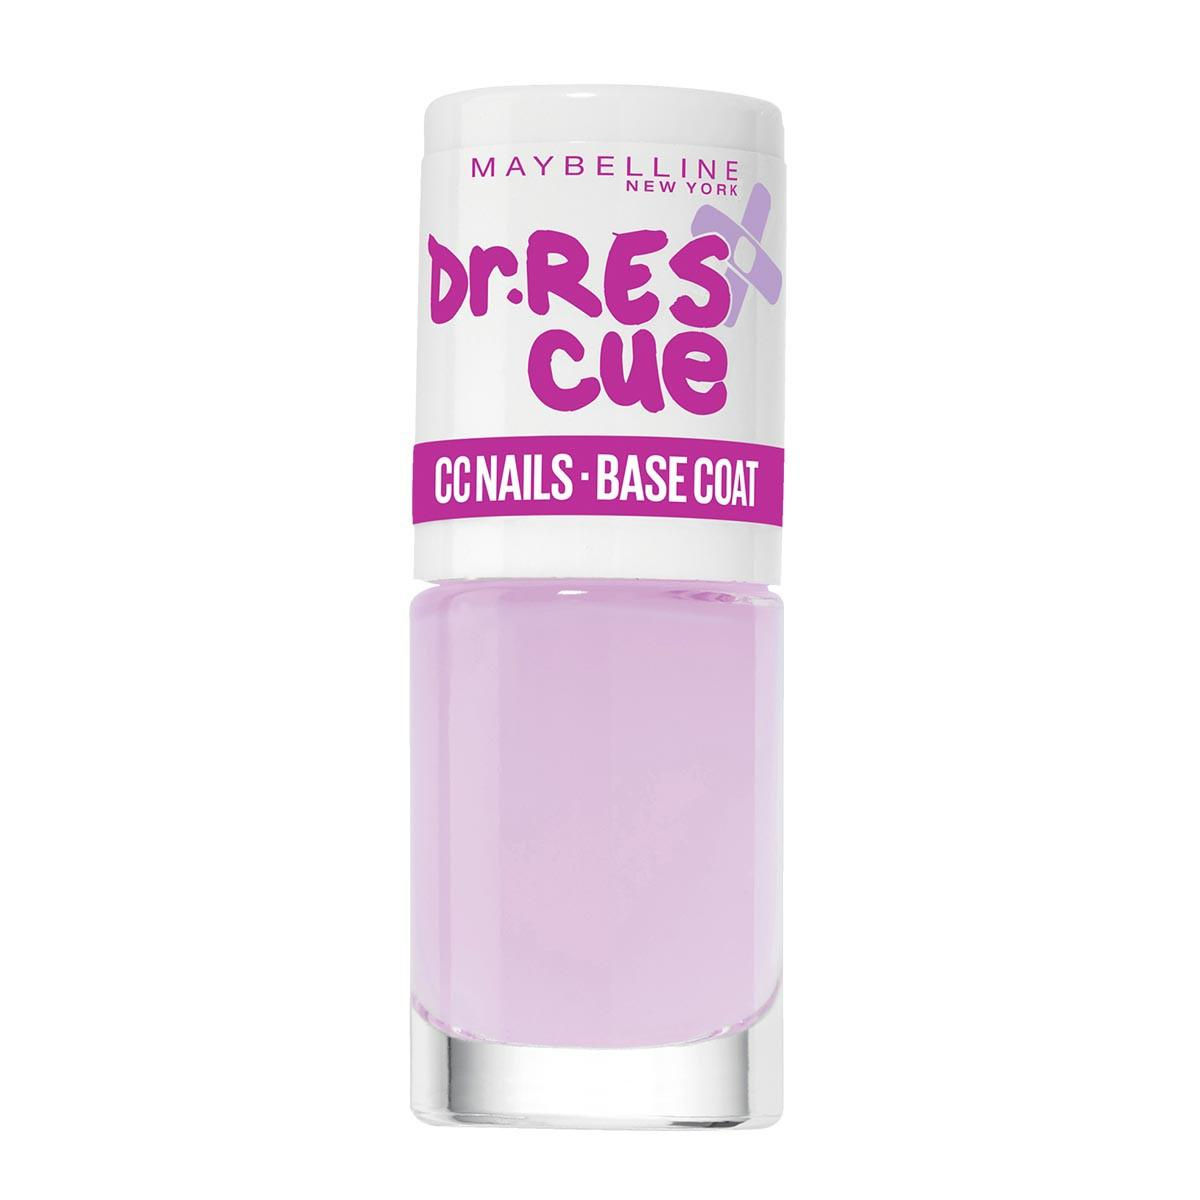 Maybelline Drrescye Cc Nails